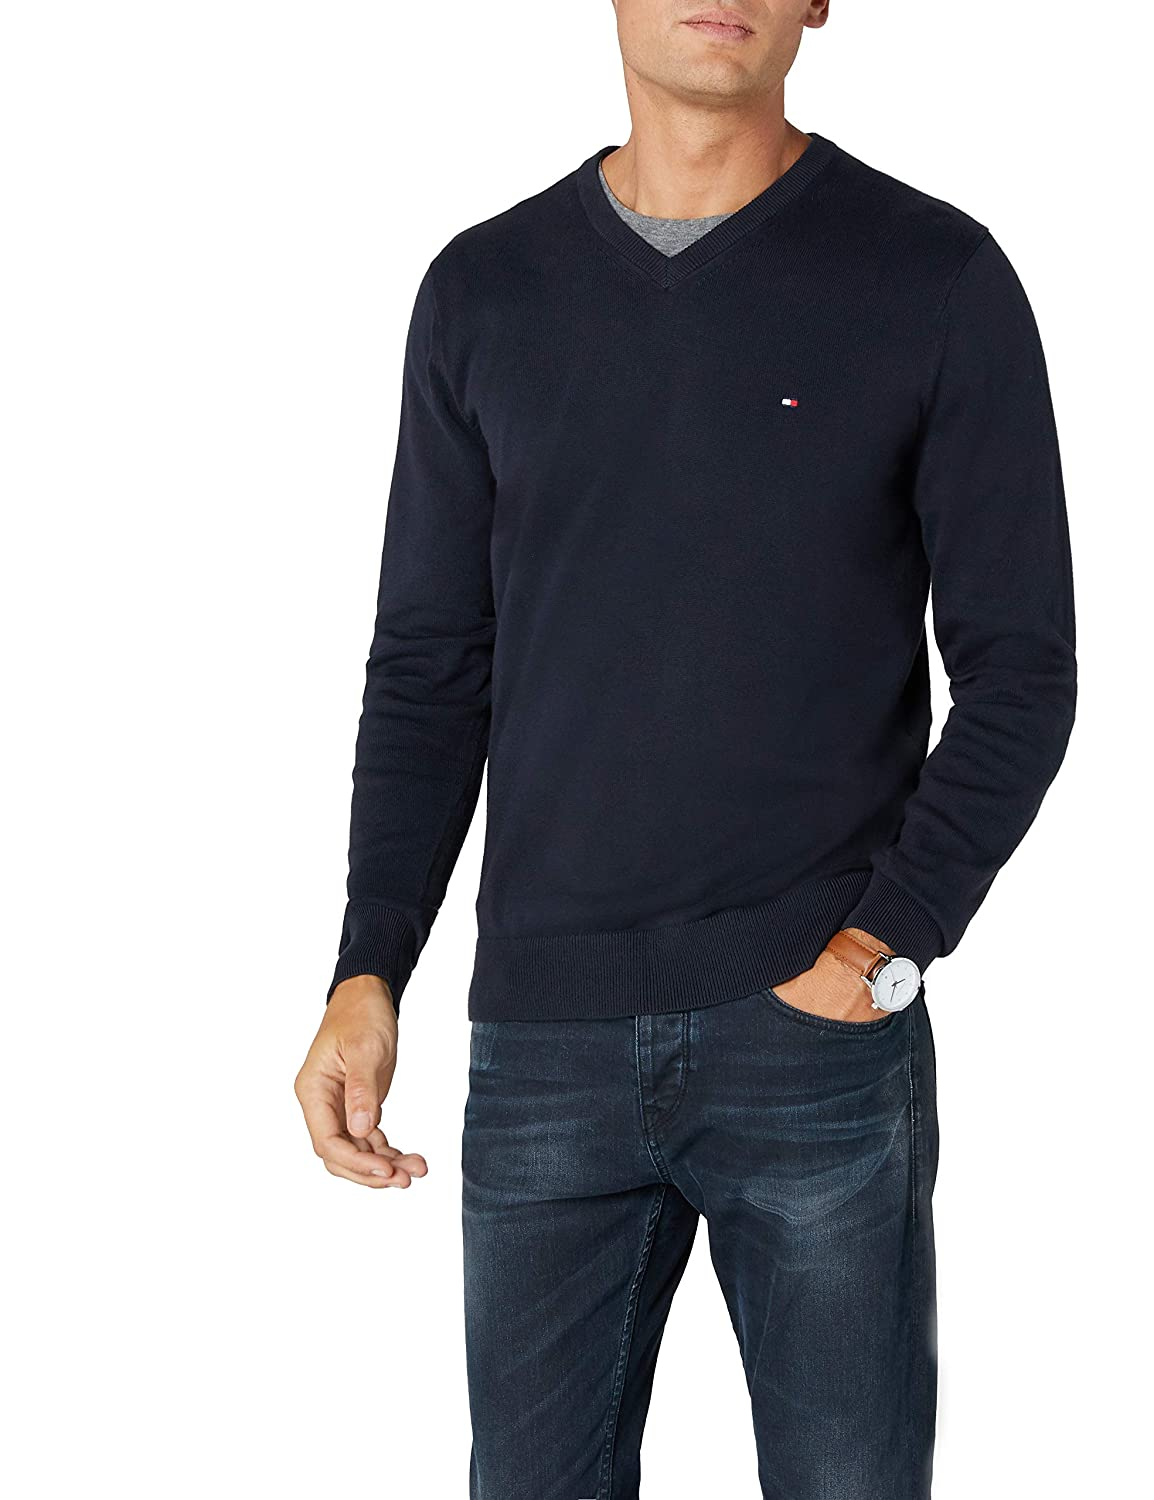 Tommy Hilfiger Pacific V-nk CF, Jersey para Hombre